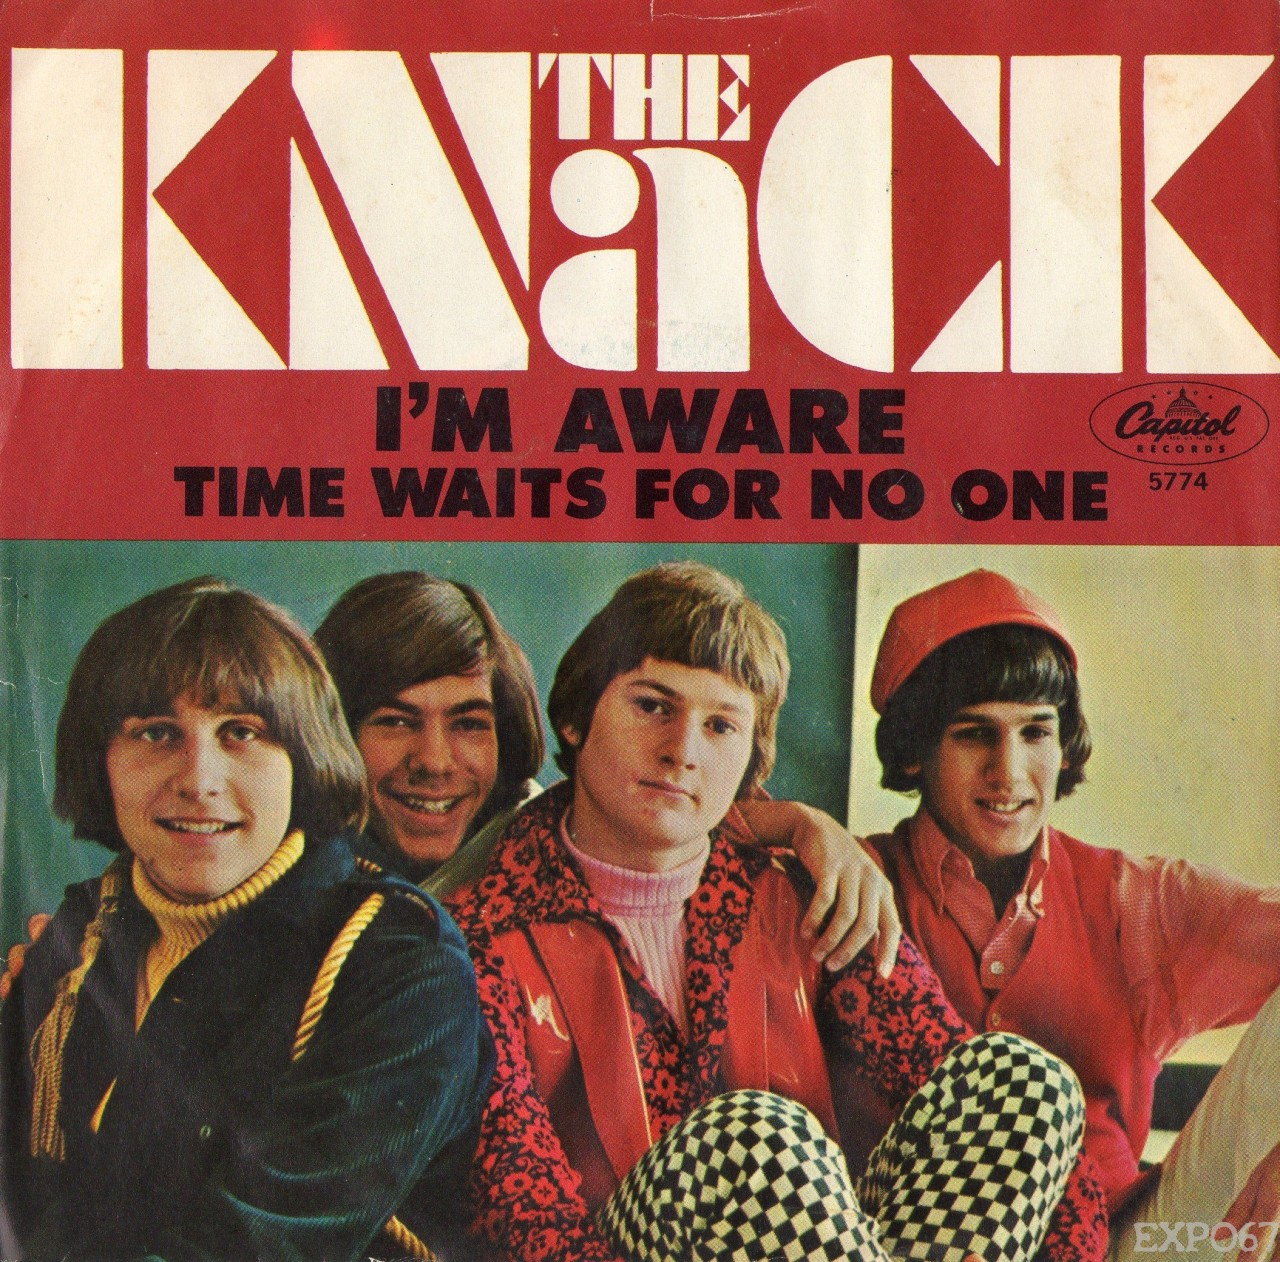 time waits for no one One last great thing about this cd is the 16 page booklet it is tremendous to use the 1979 catch phrase, get the knack, no not the my sharona knack, but that other knack from the 60's.